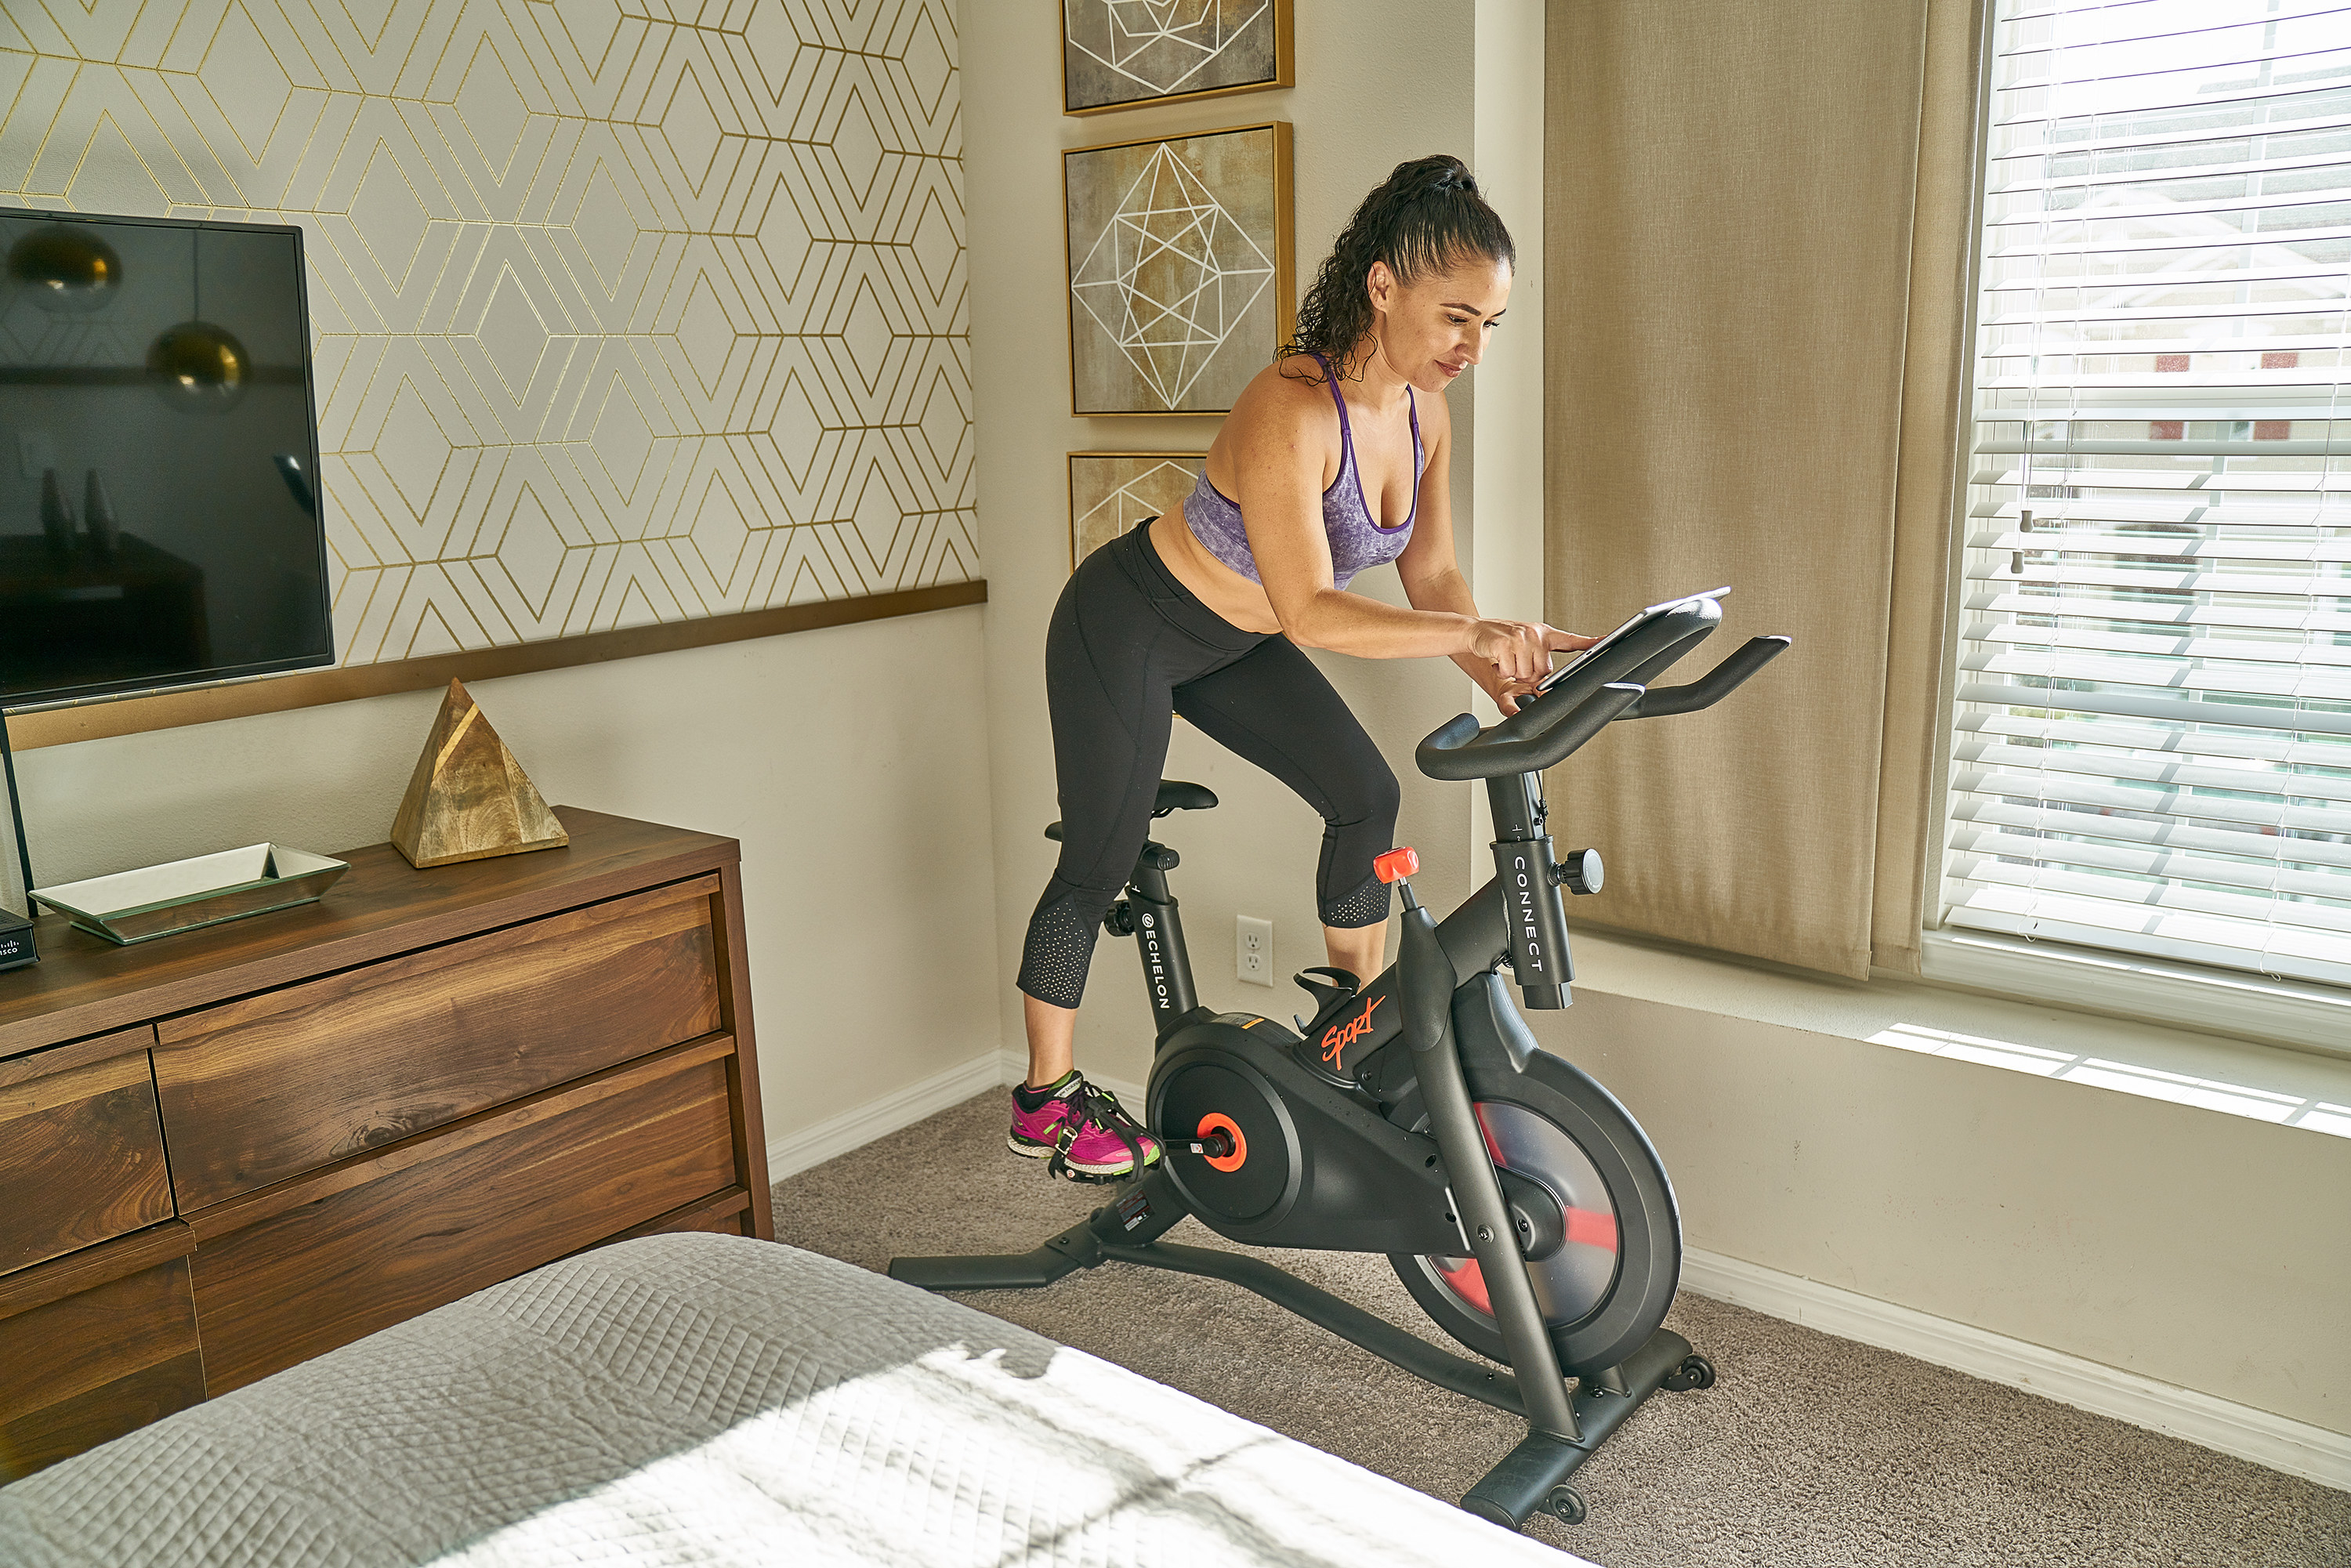 The exercise bike